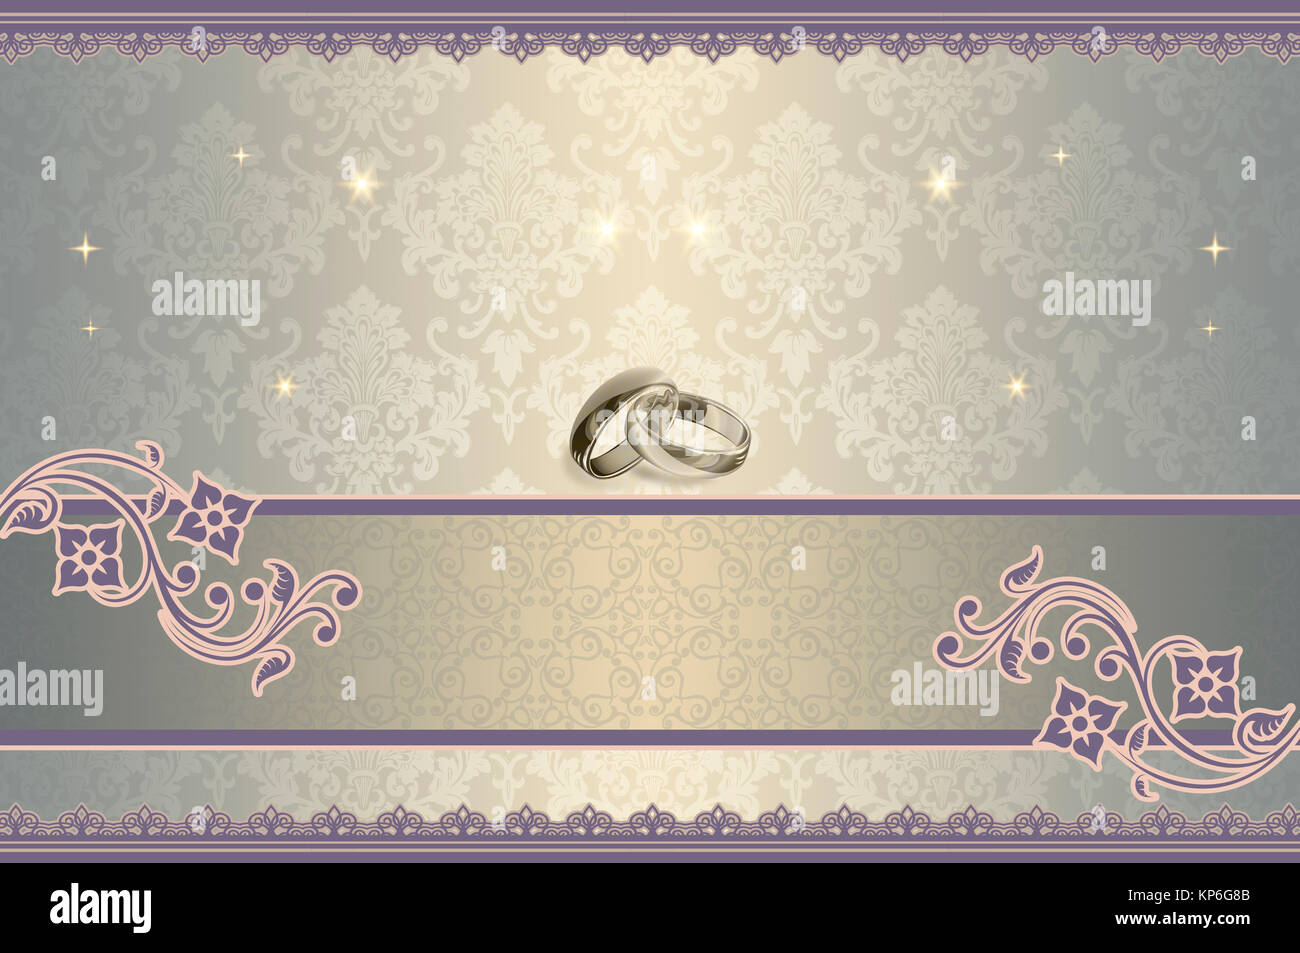 Elegant Background With Beautiful Patterns And Gold Rings